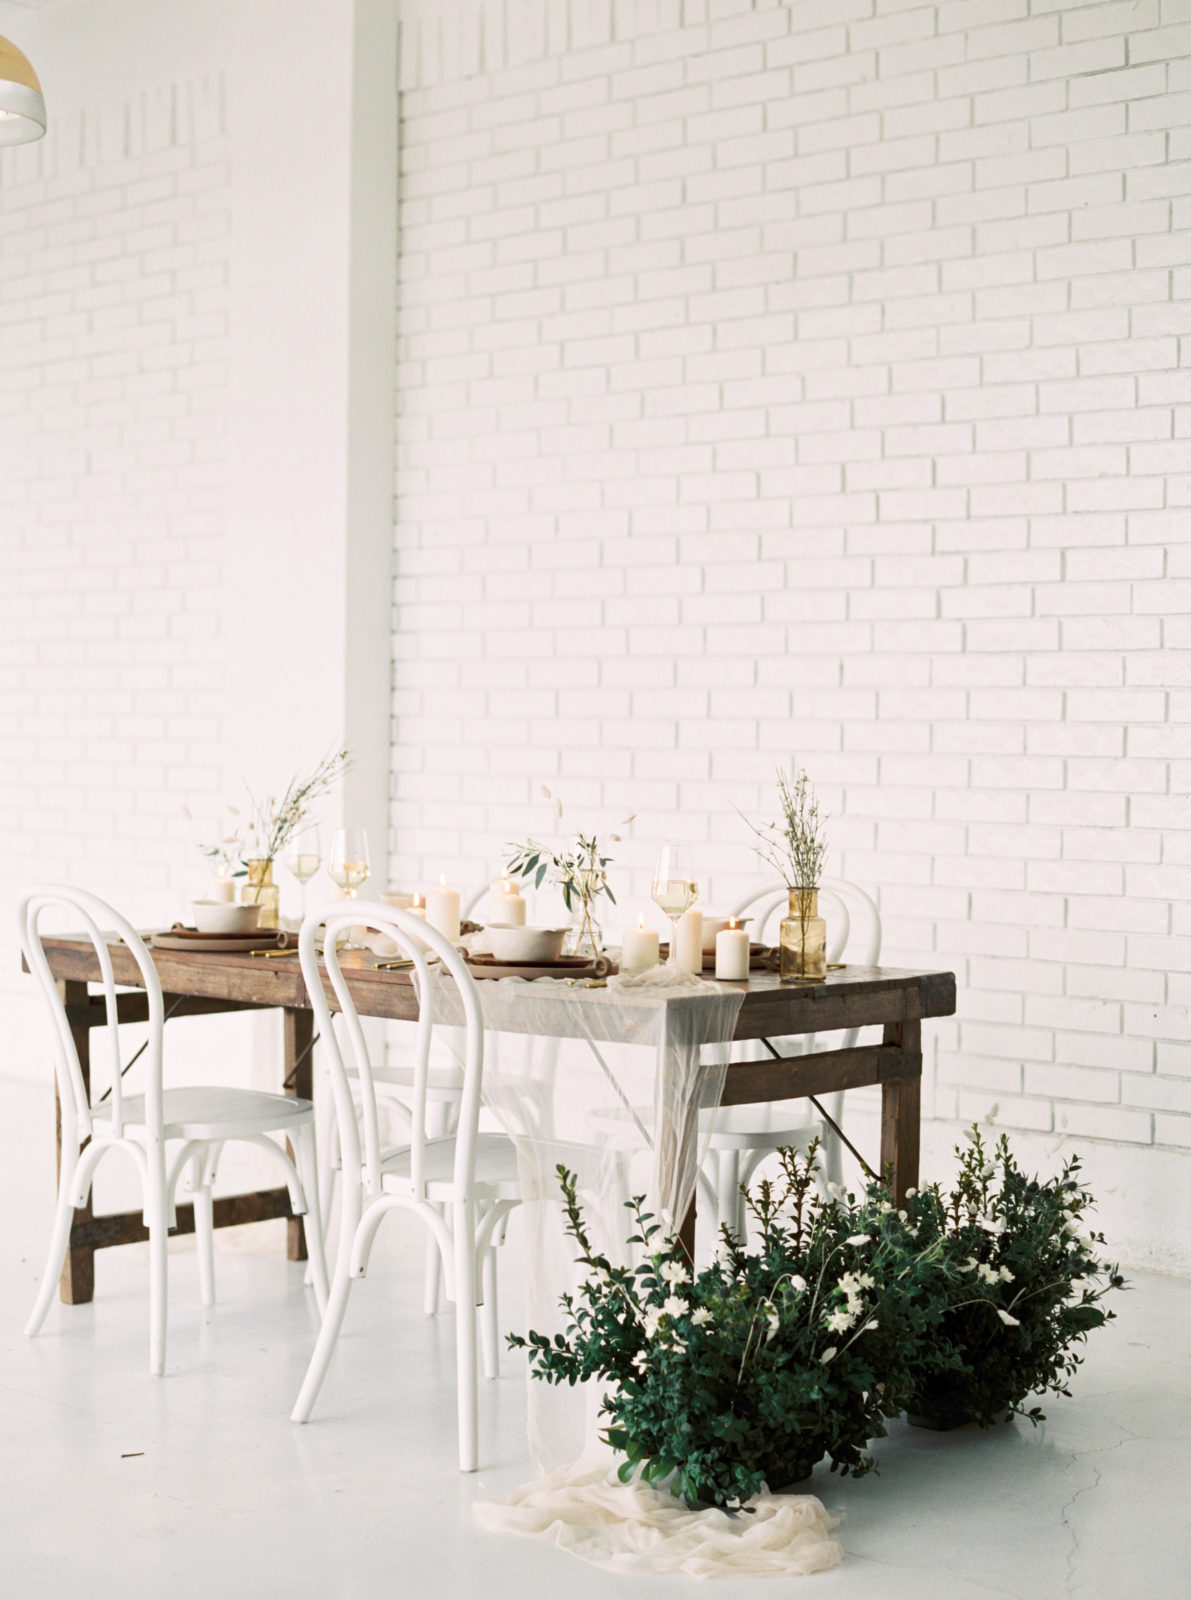 Wedding reception decor inspiration for styled shoot featured on Alexa Kay Events